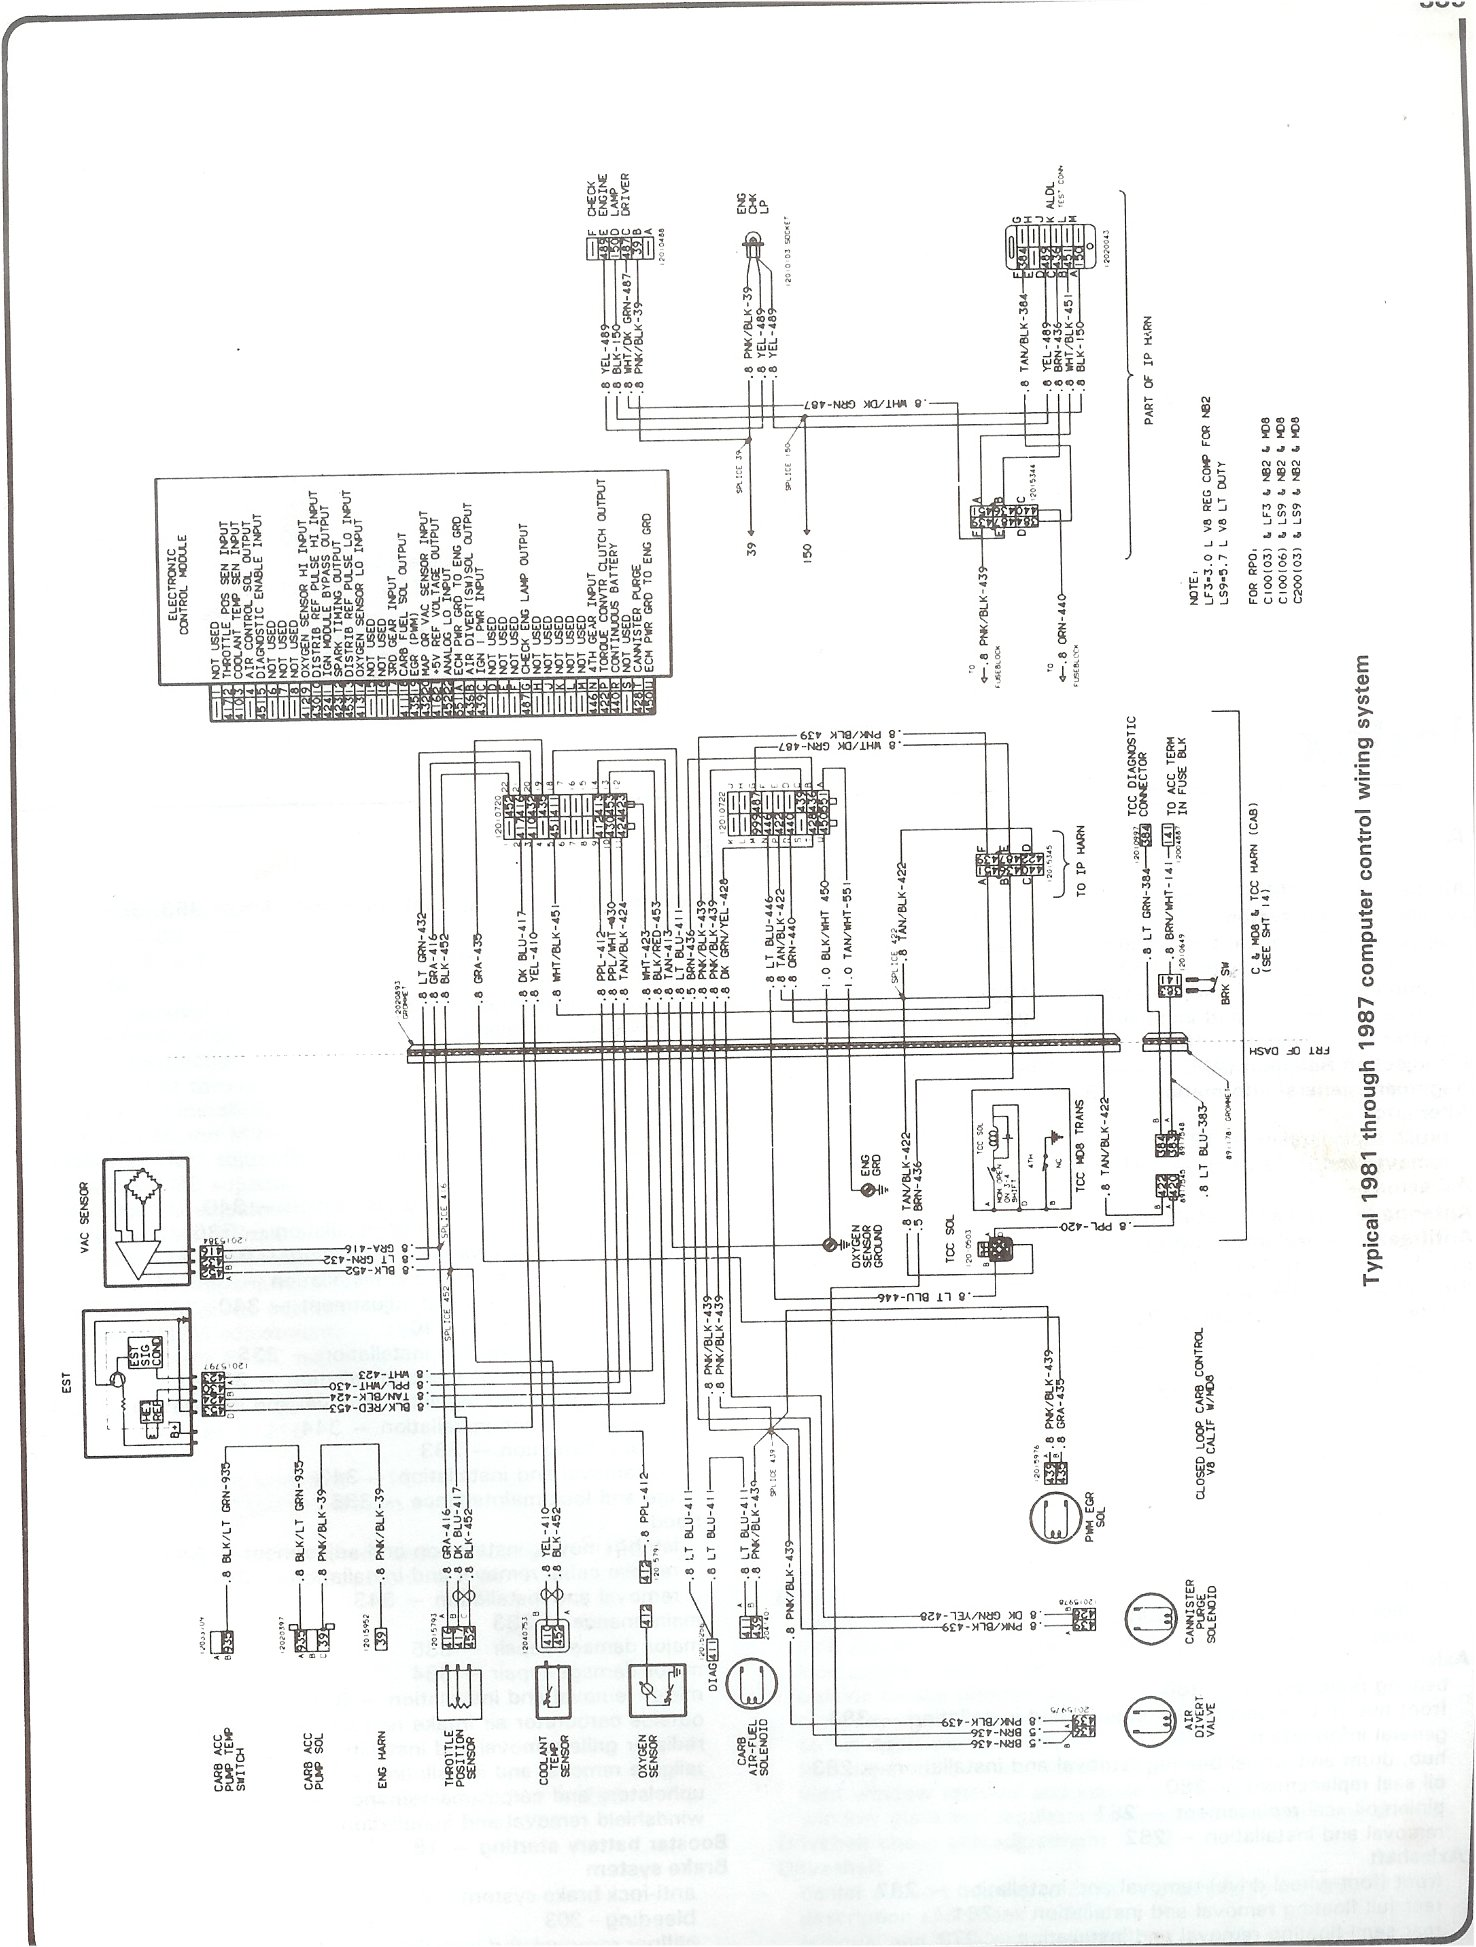 81 87_computer_control_wiring 1983 chevy truck wiring diagram 1981 chevy truck wiring diagram 1984 Chevy Truck Wiring Diagrams at gsmportal.co